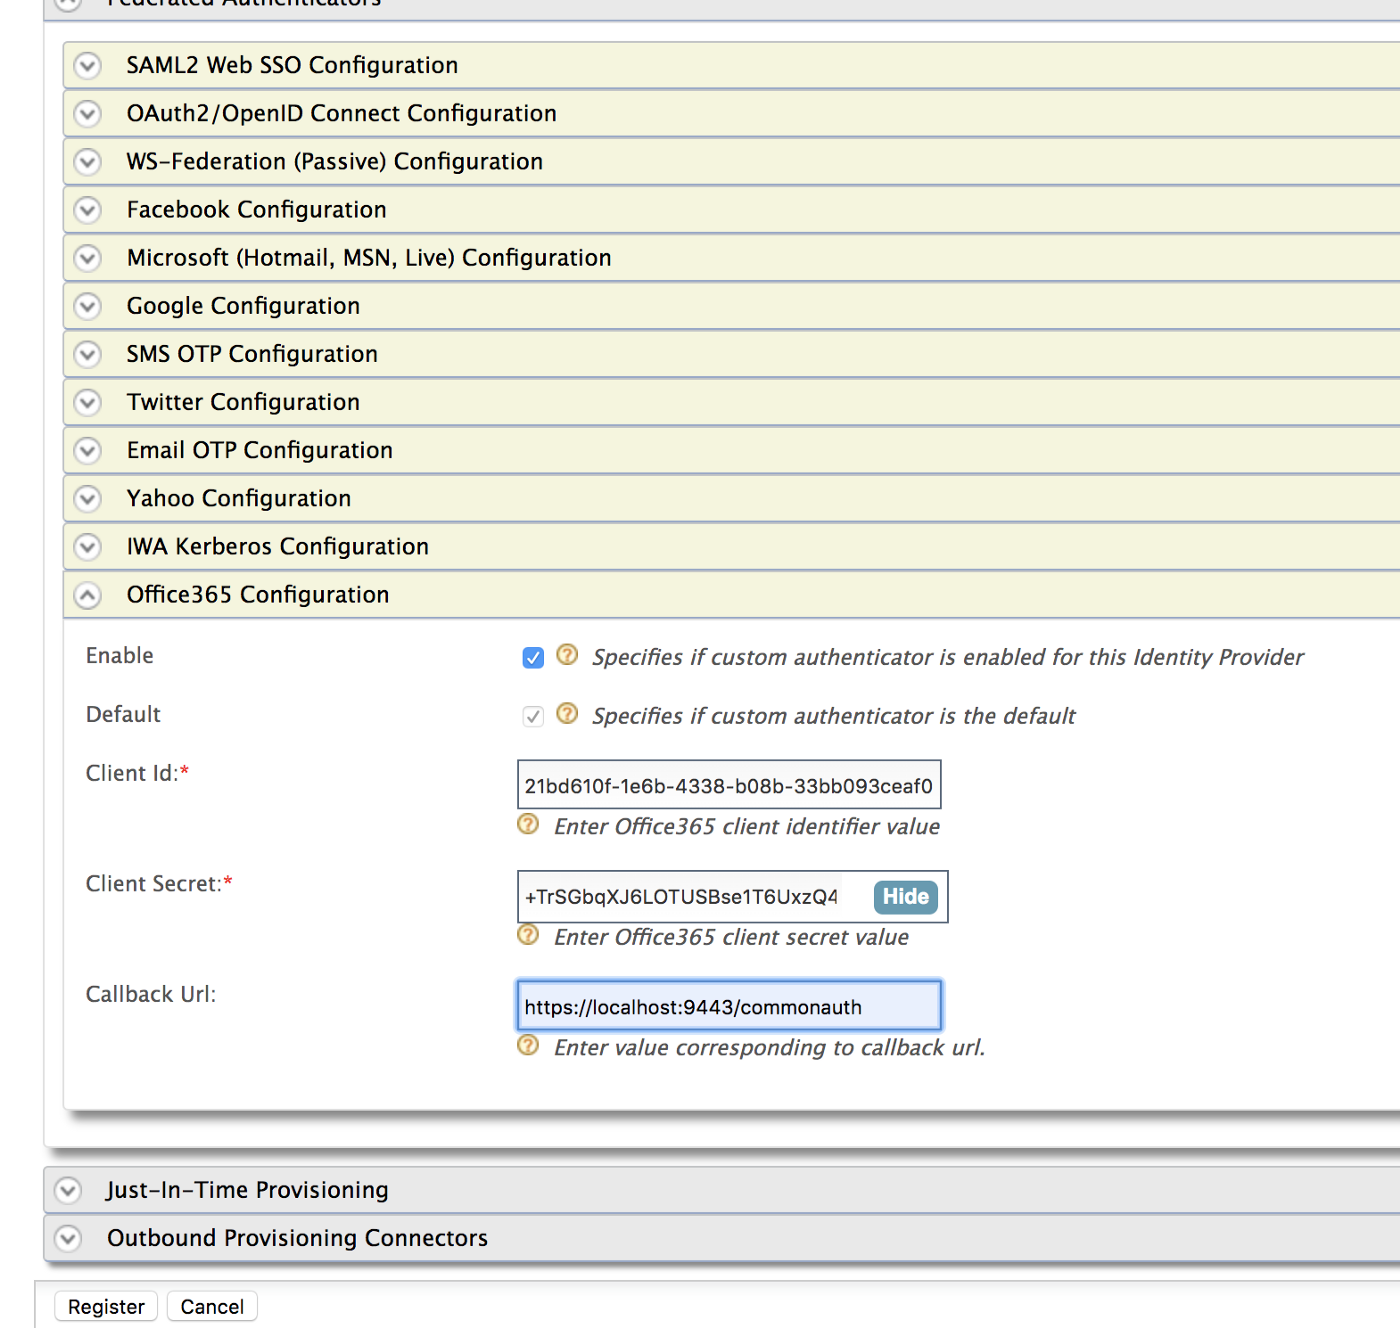 Configuring Microsoft Azure AD Authenticator as Federated IDP in